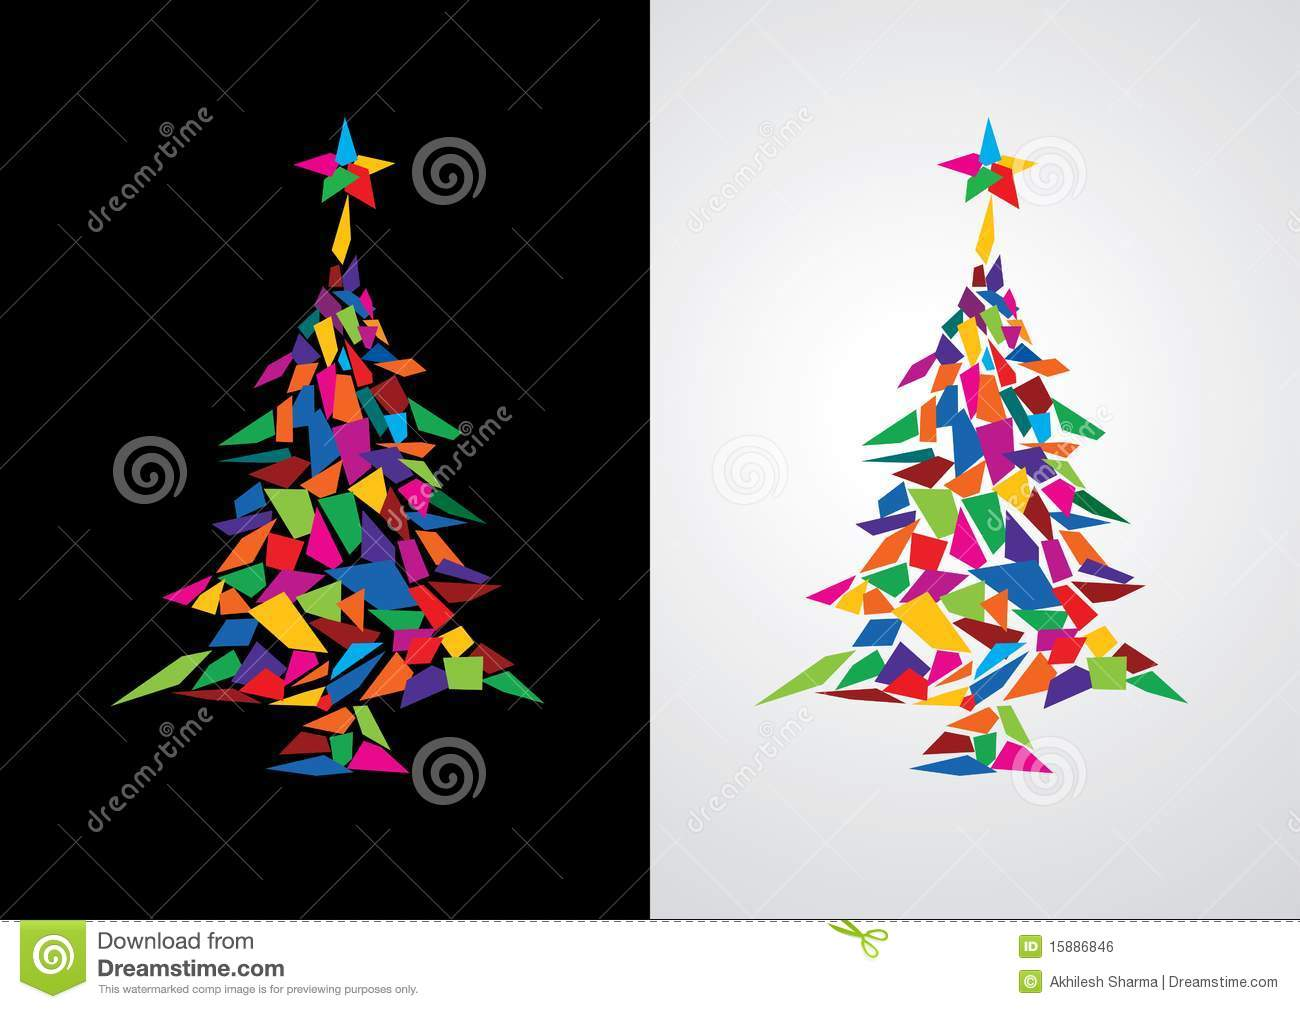 Colorful Christmas.Abstract Colorful Christmas Tree Stock Vector Illustration